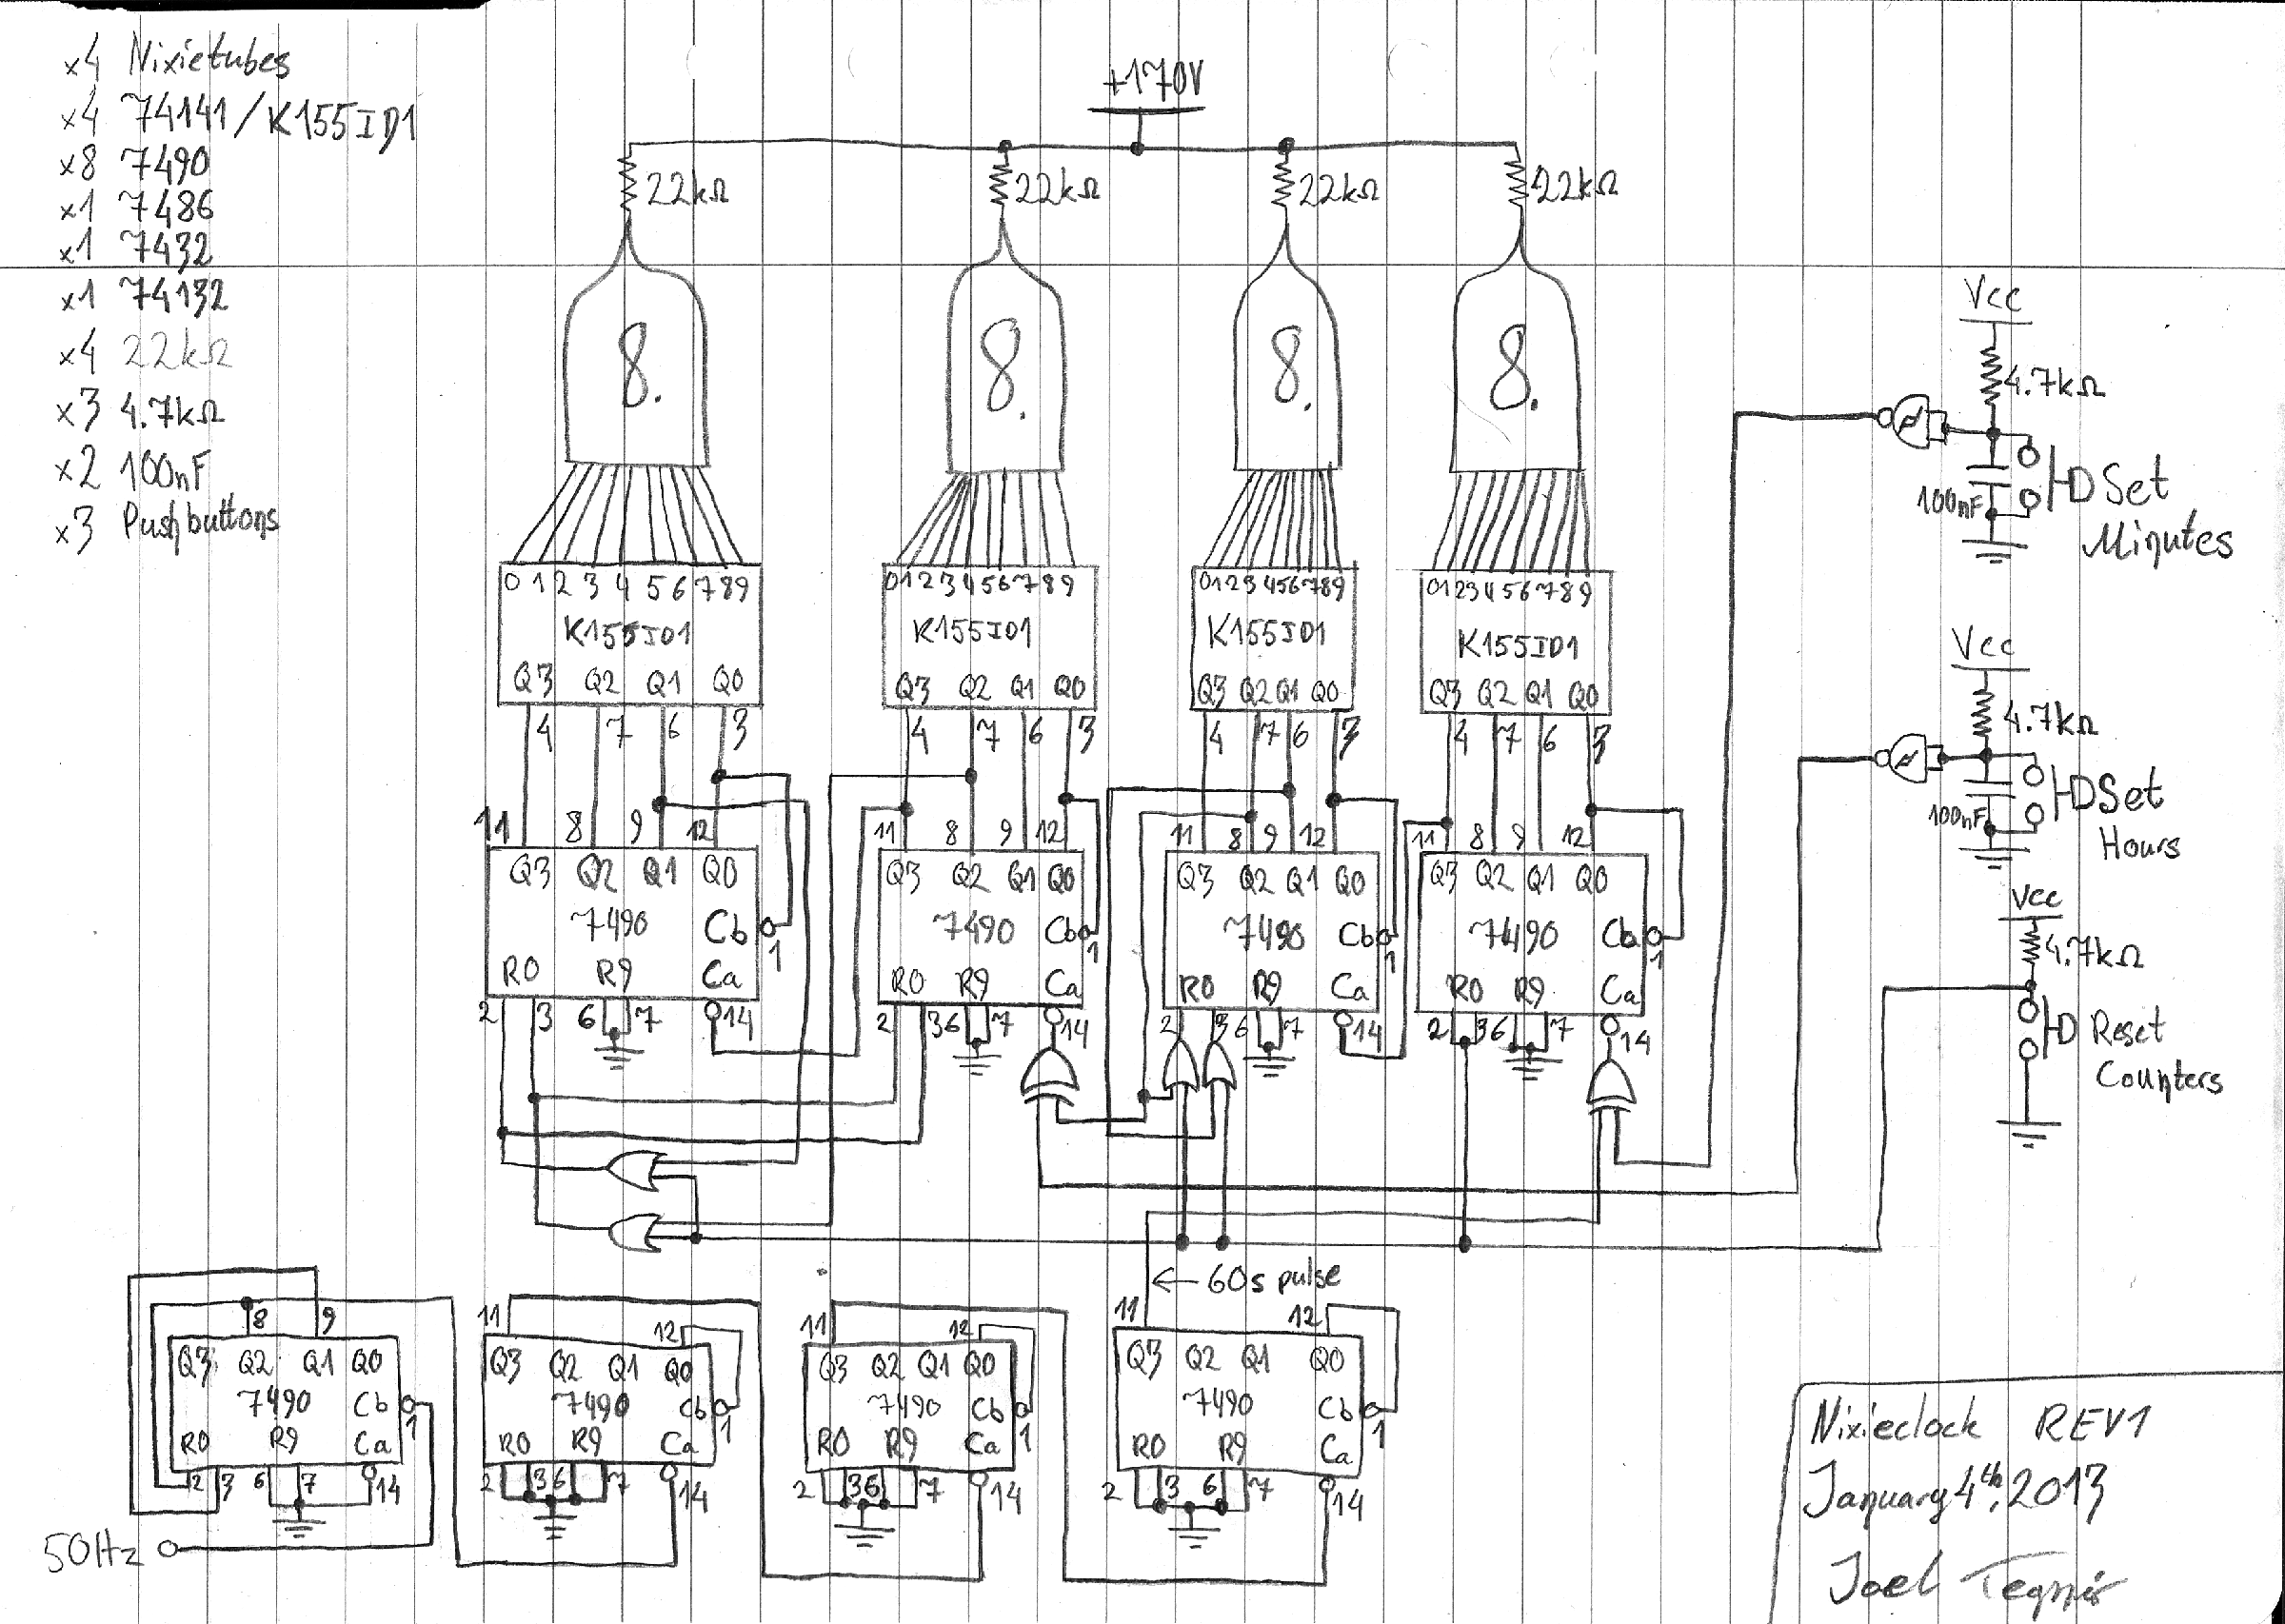 Wiring Diagrams Archives Page 112 Of 116 Binatanicom